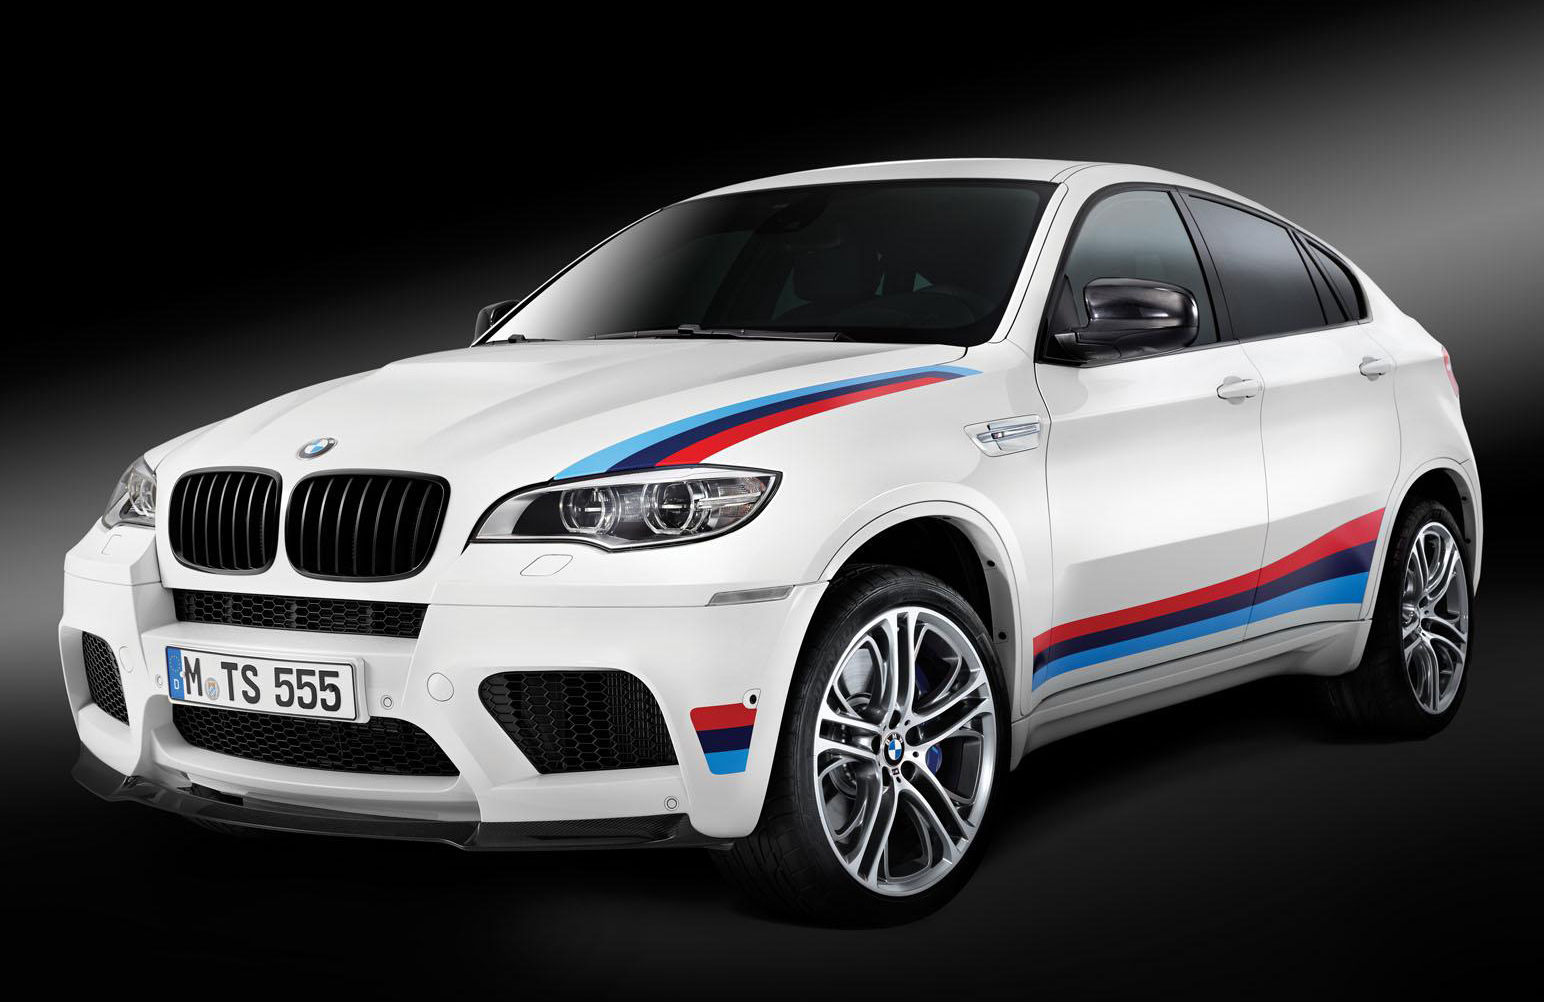 2014 BMW X6 M Design Edition 1 2014 BMW X6 M Design